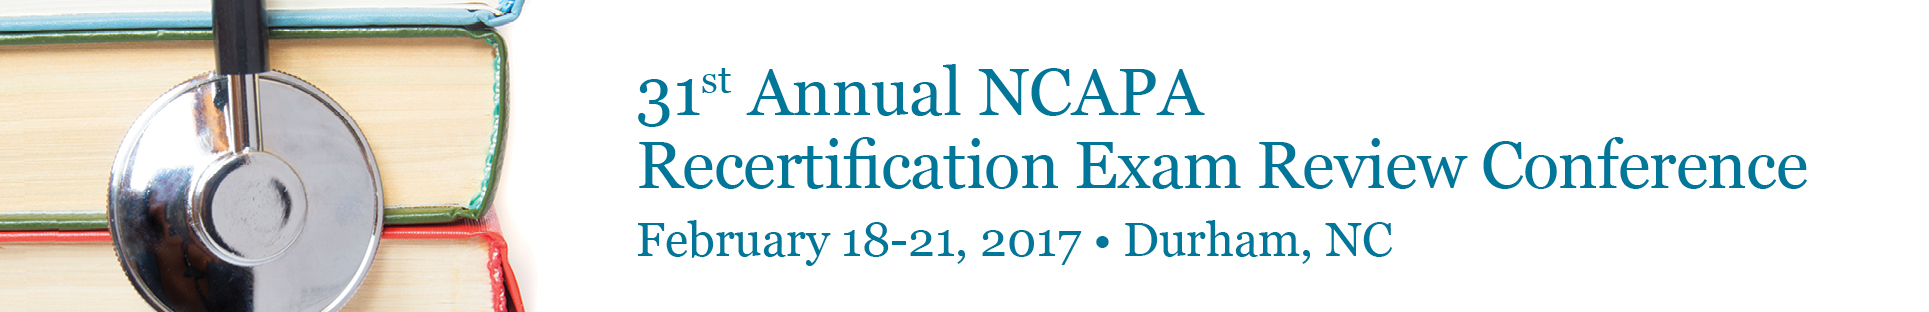 31st Annual NCAPA Recertification Exam Review Conference